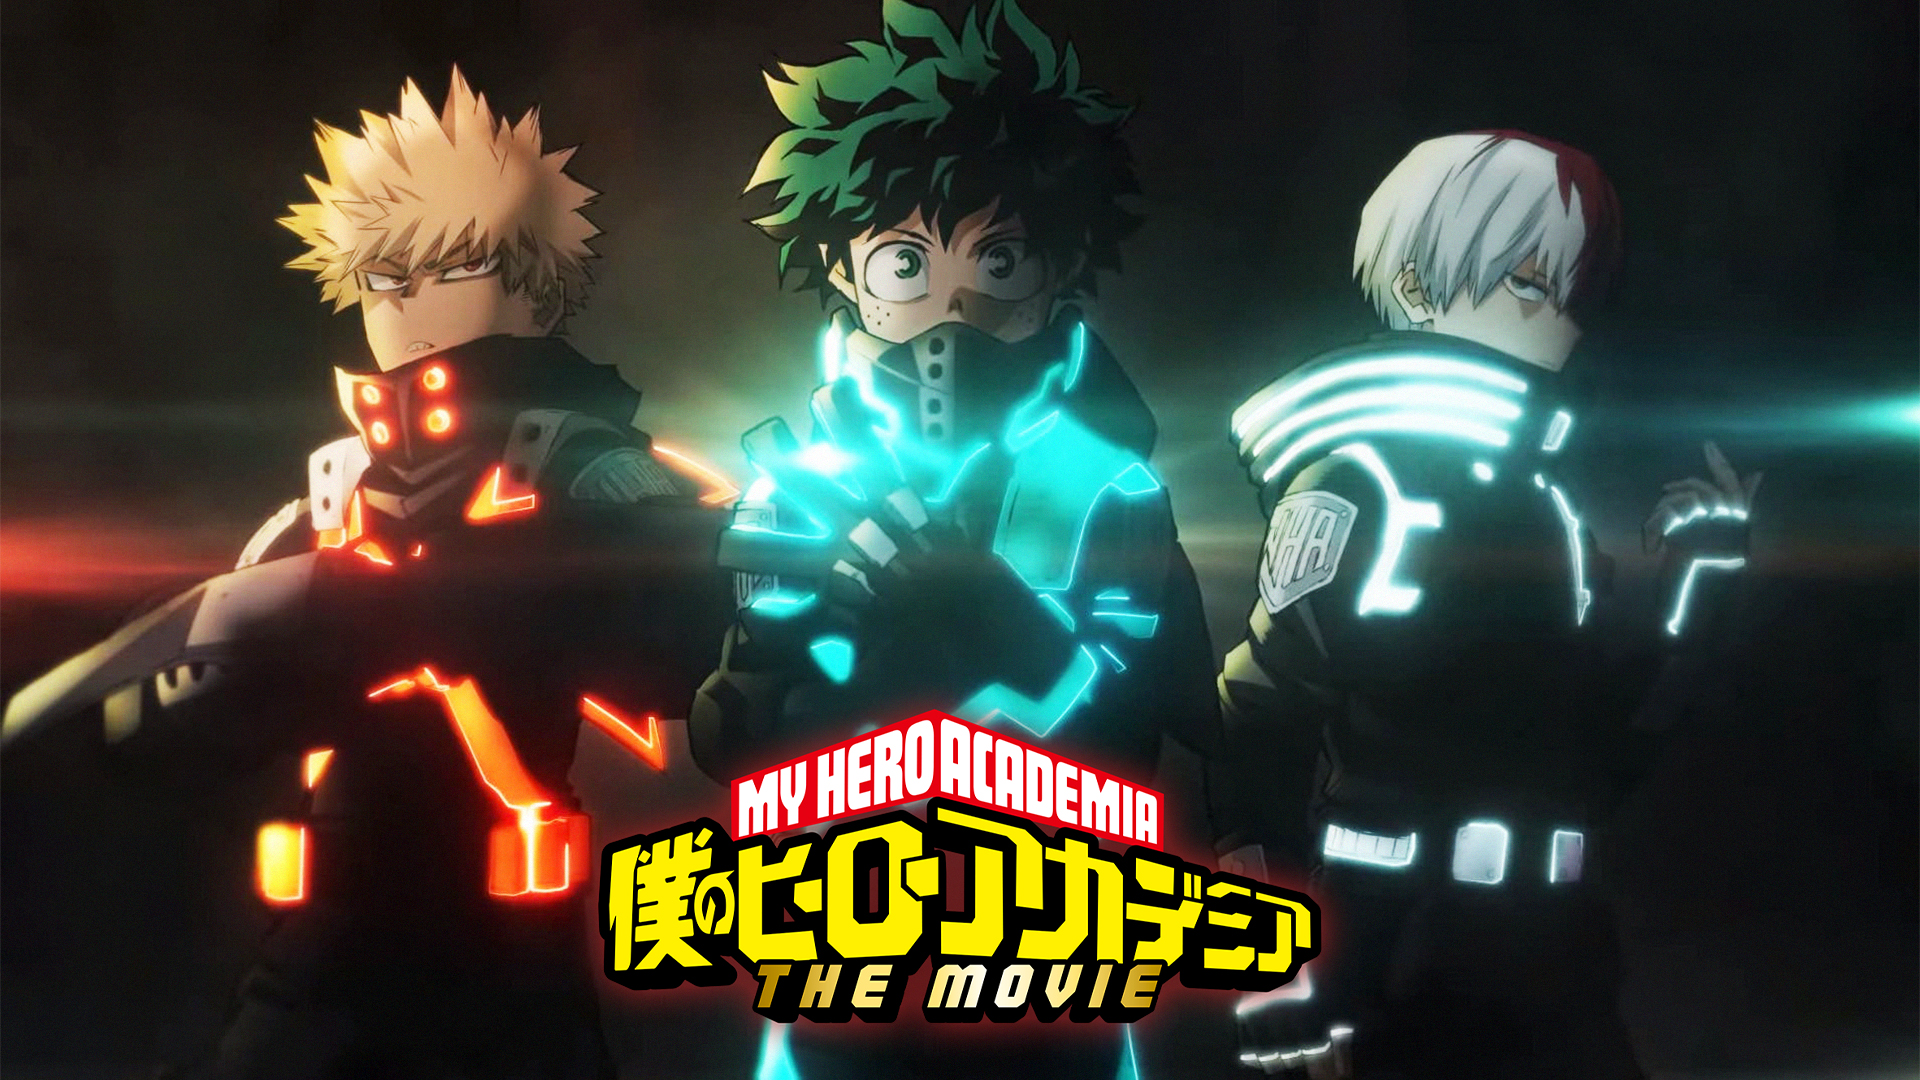 my hero academia movie trailer